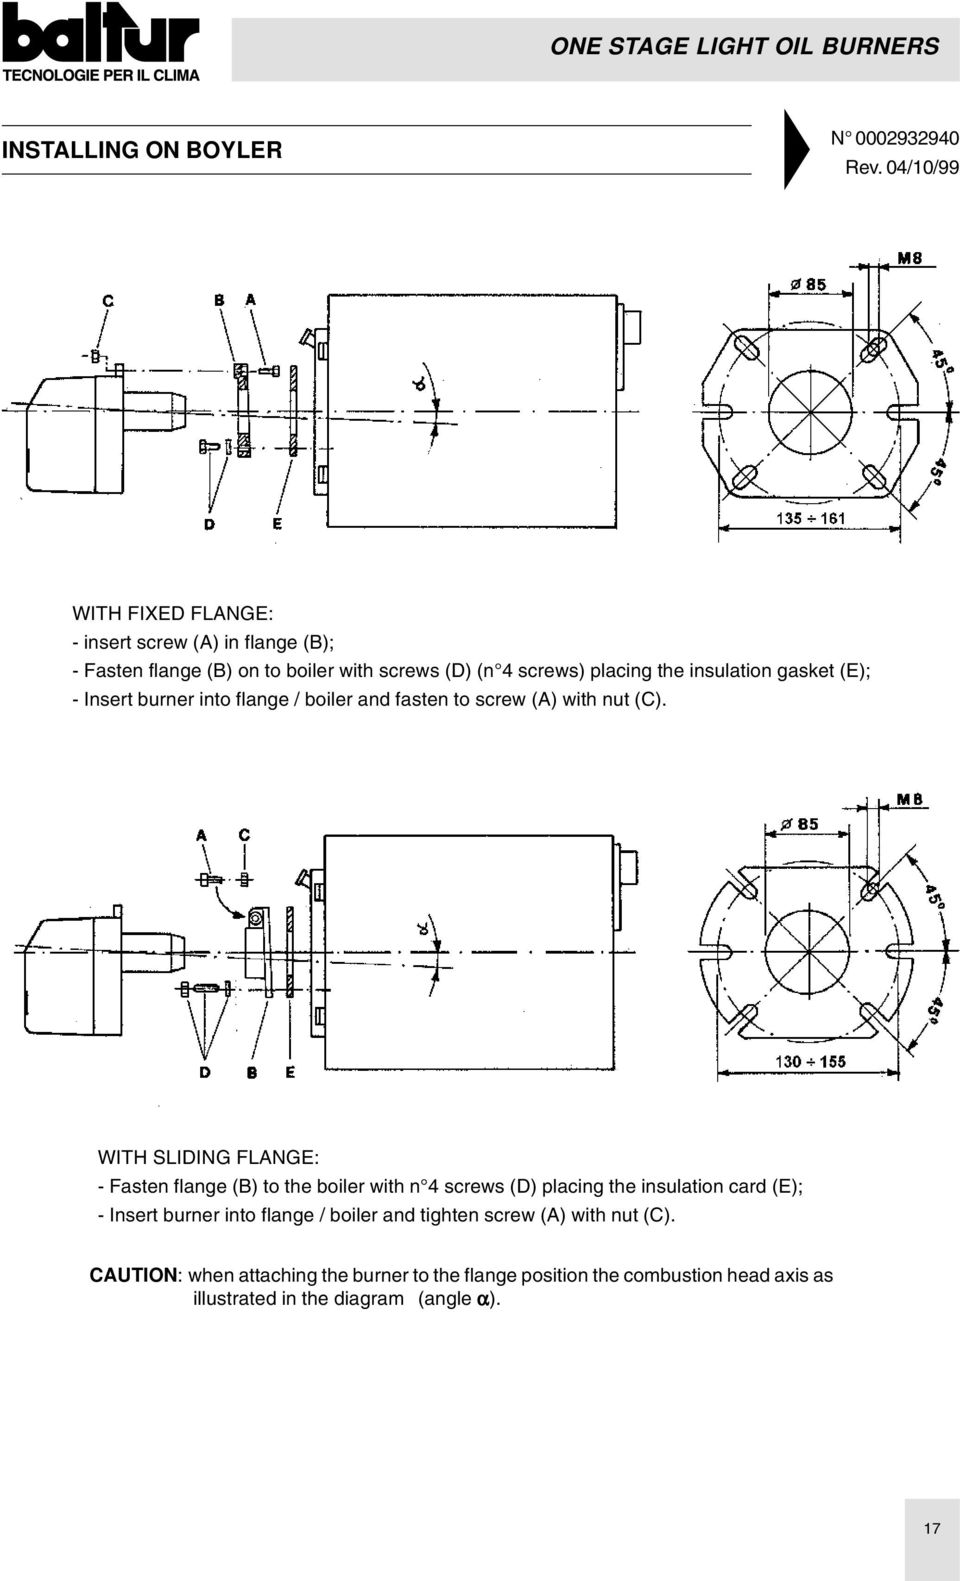 gasket (E); - Insert burner into flange / boiler and fasten to screw (A) with nut (C).